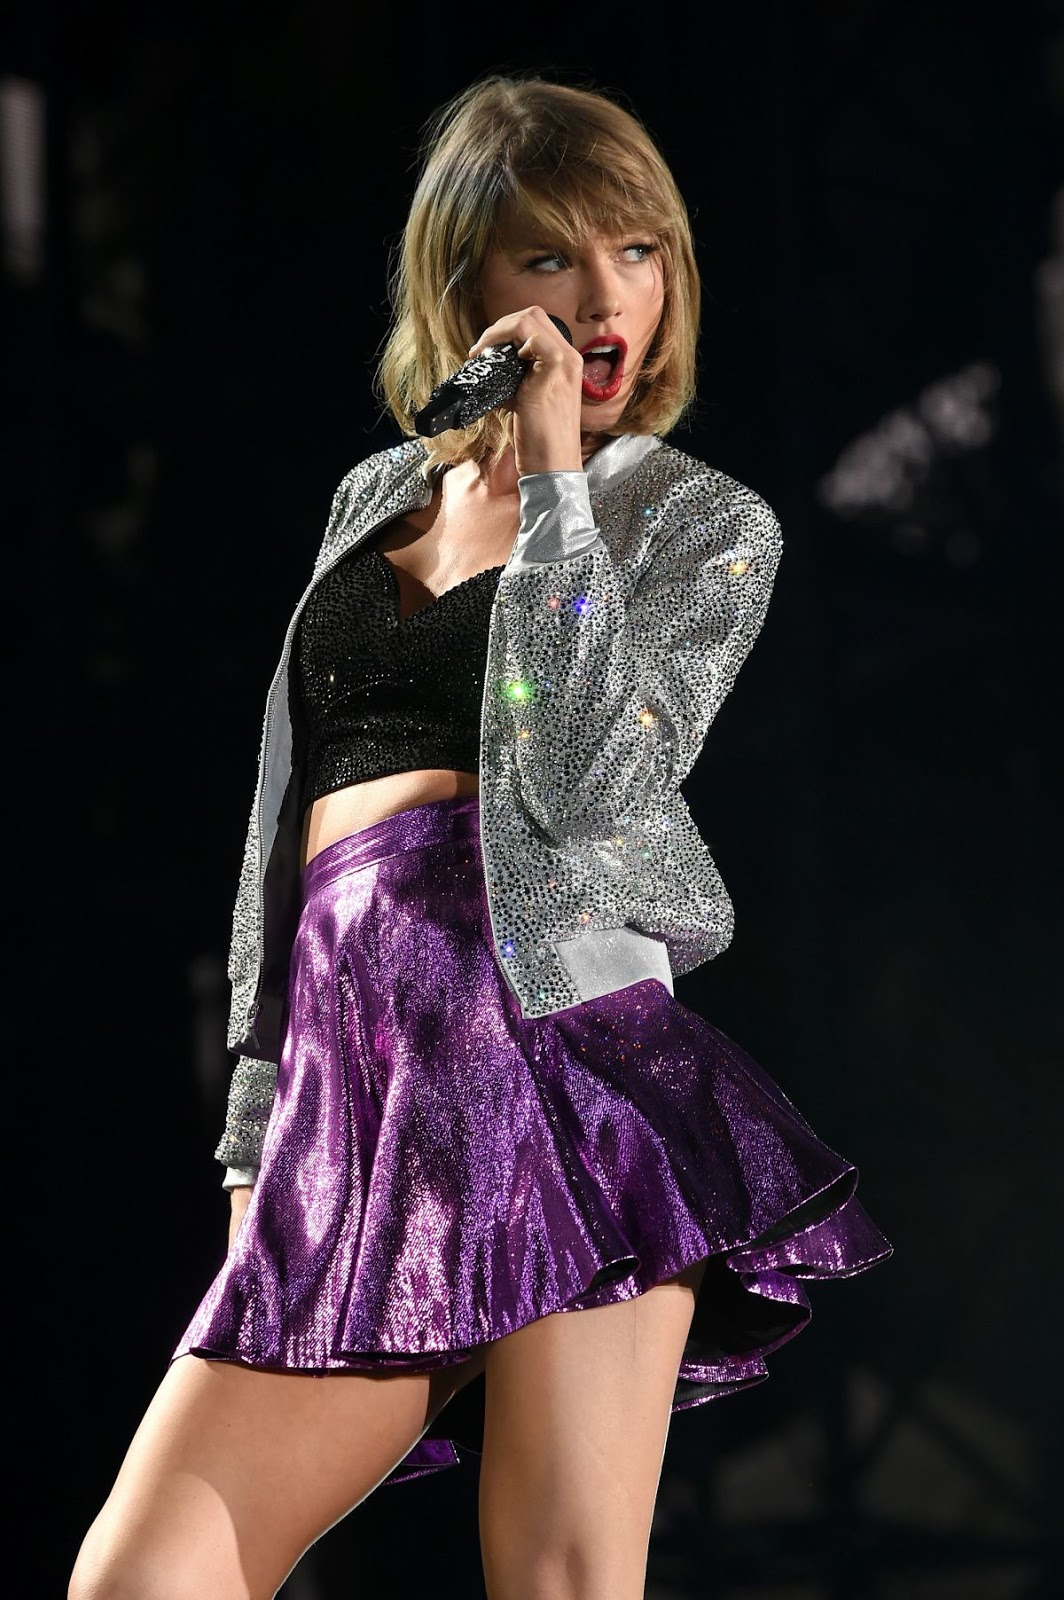 Singer, Actress @ Taylor Swift At 1989 World Tour In Philadelphia